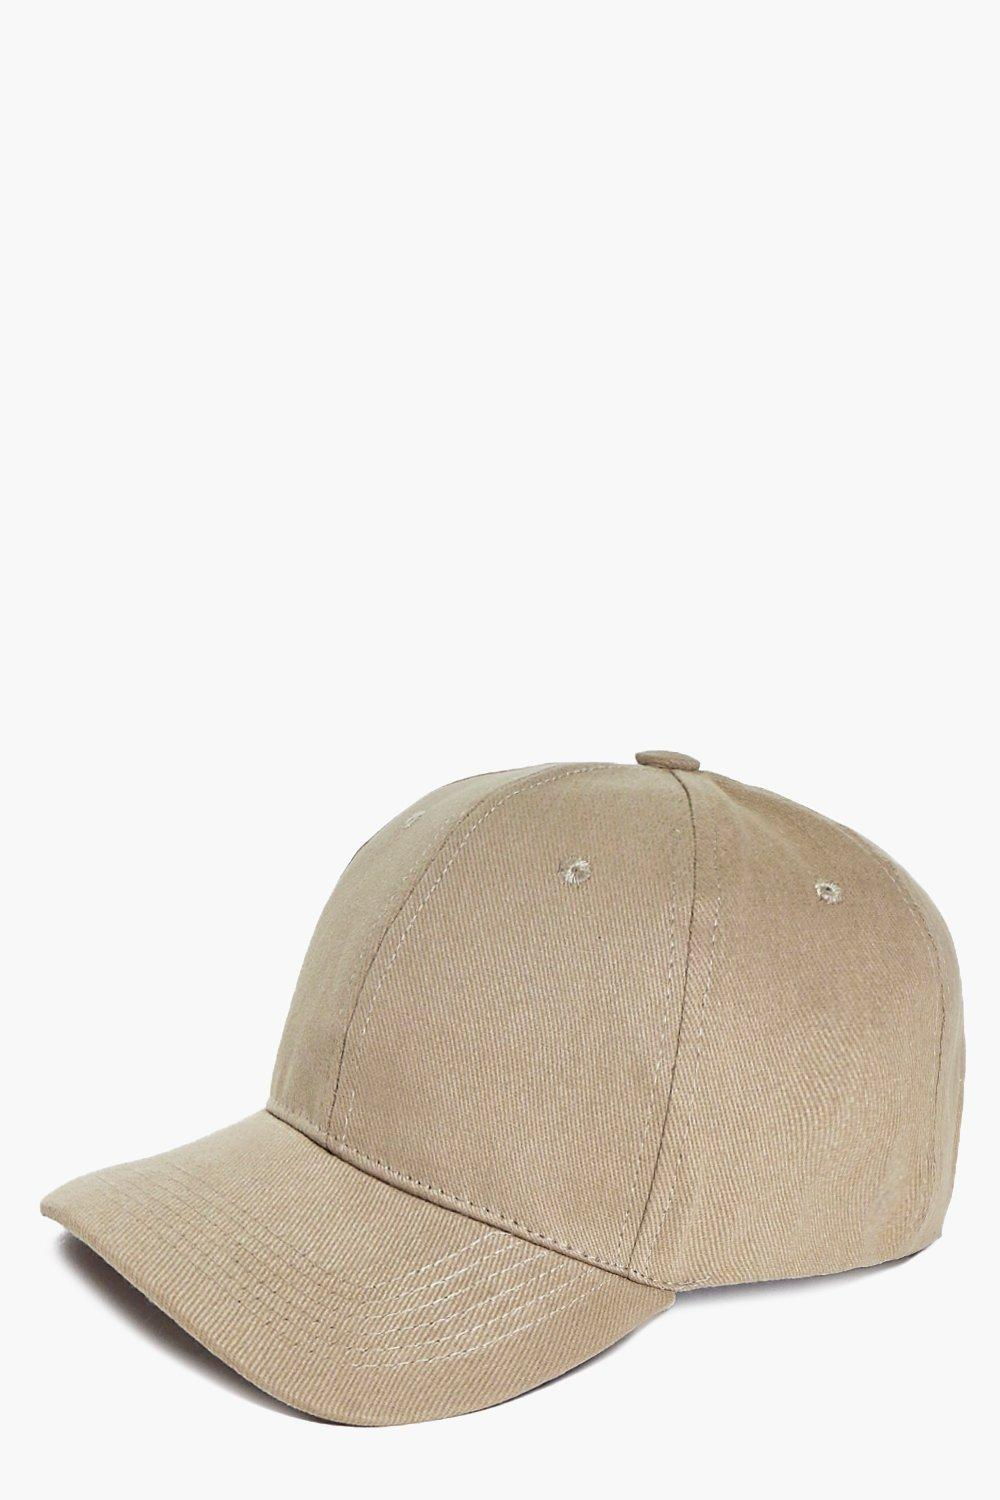 Basic Baseball Cap - beige - Stay snug in scarves